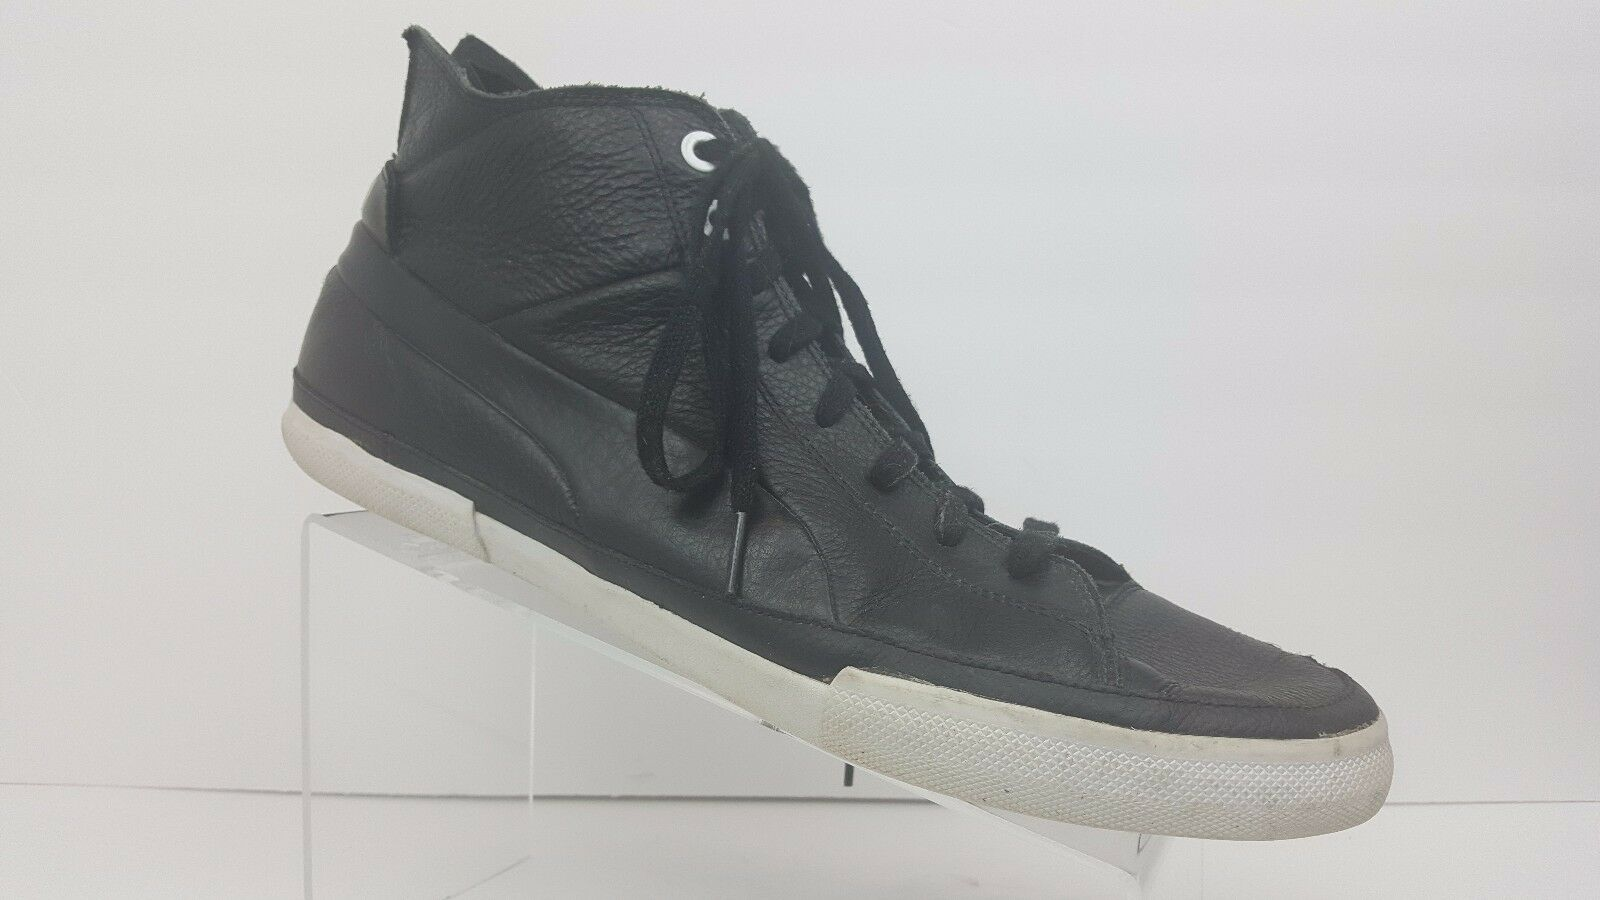 Puma Black Leather Street Step Mid Step L High top Sneakers Men's 12 Seasonal clearance sale